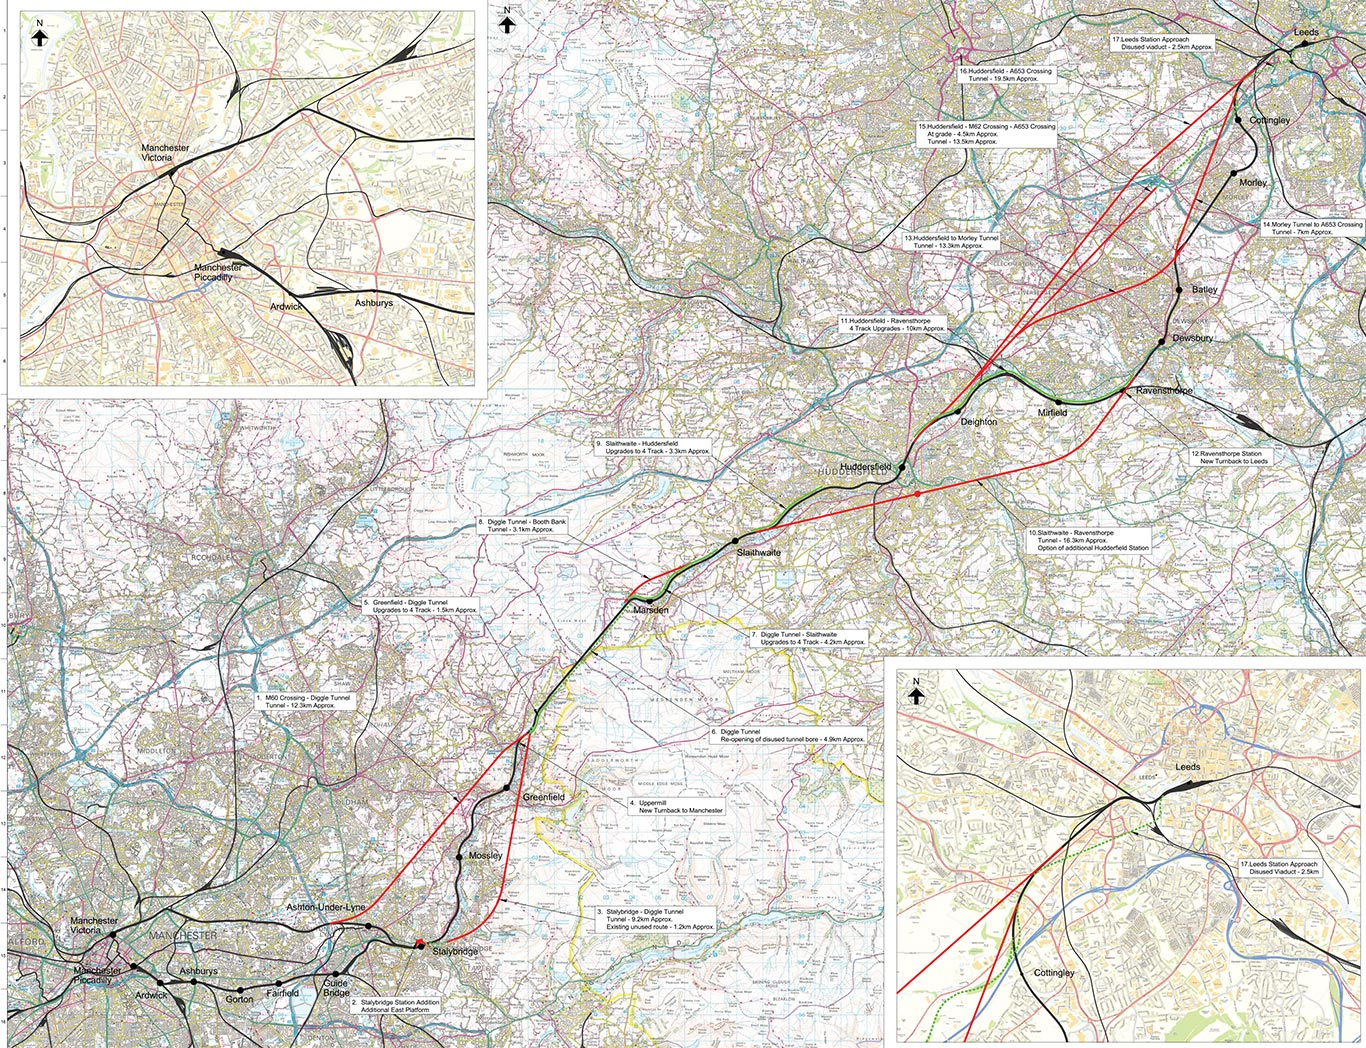 Fig 3. Arup proposals for HS3 tunnel alignments (click to enlarge)